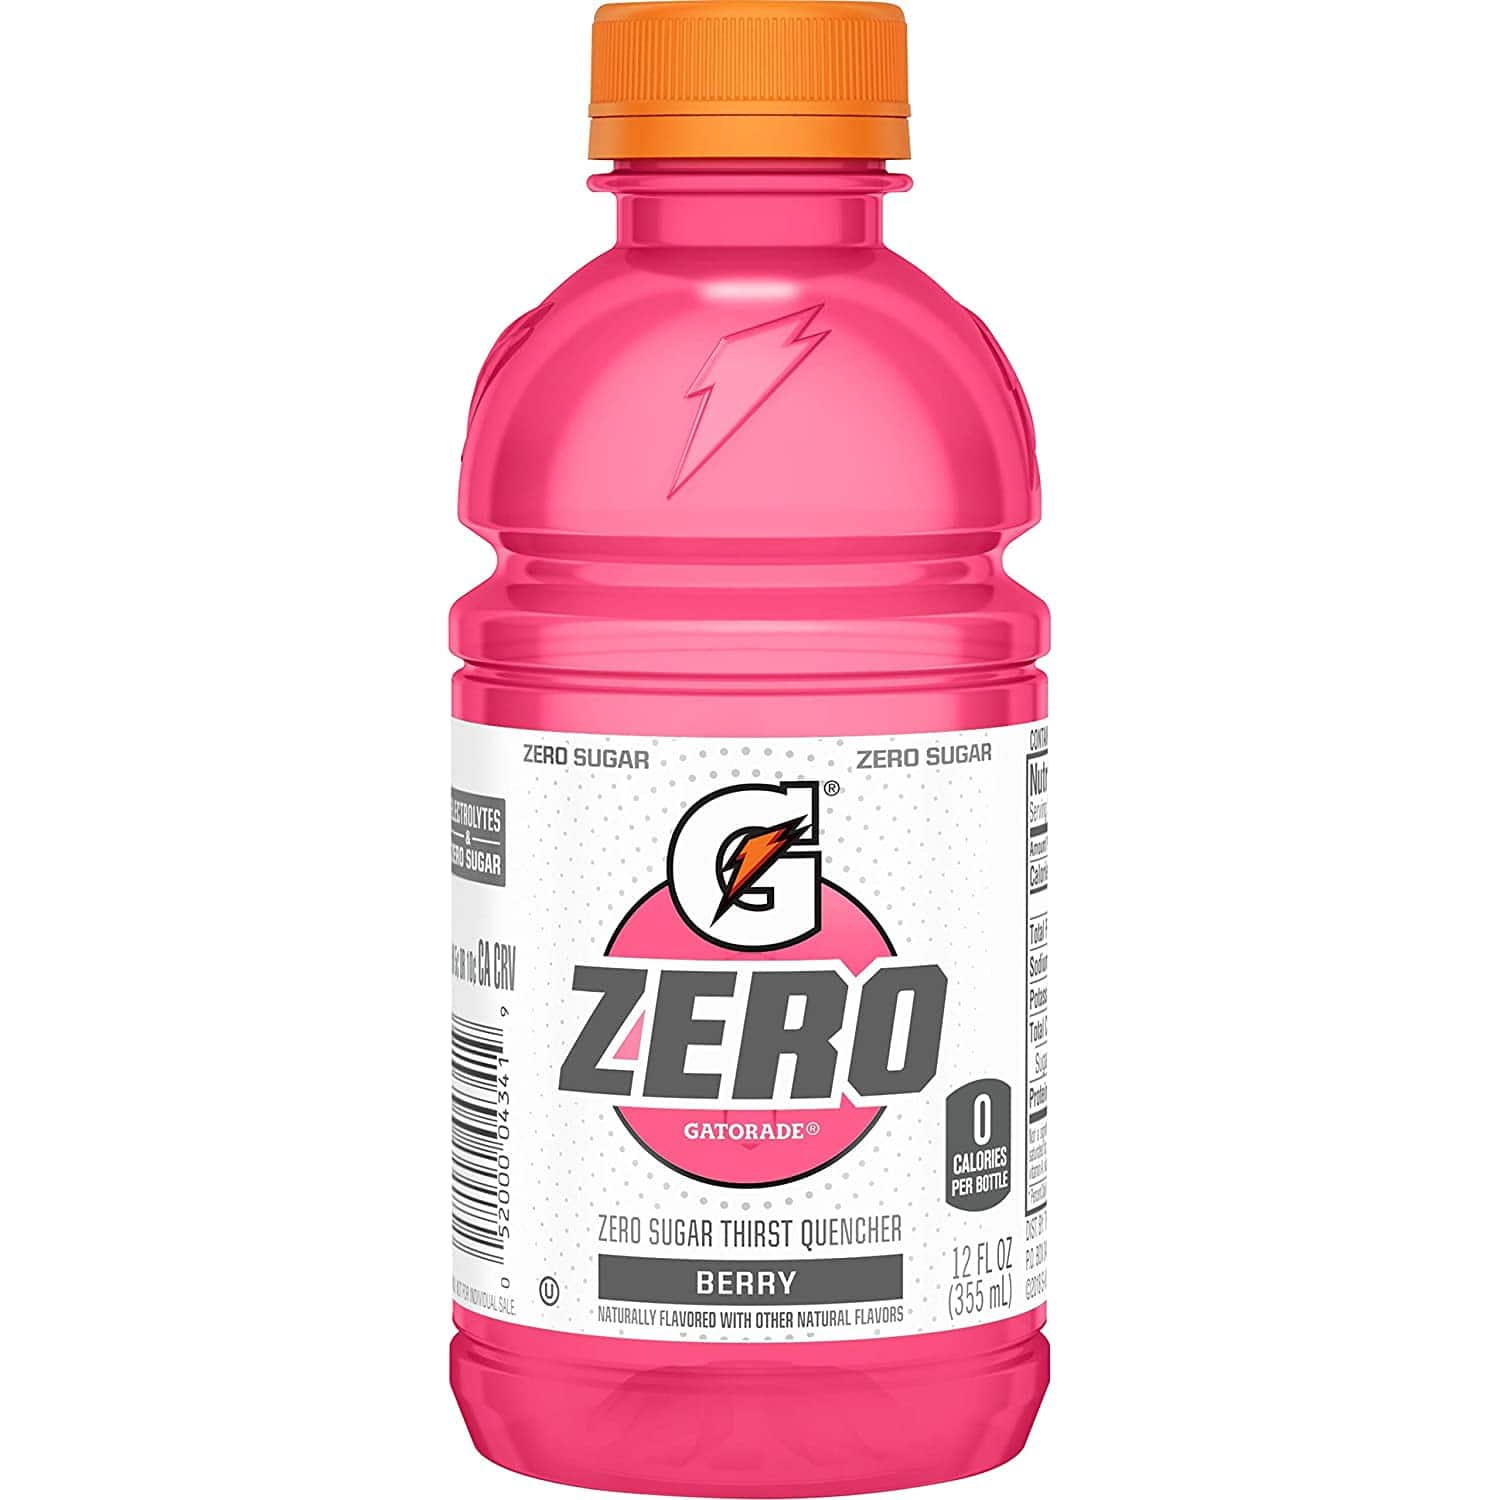 Gatorade Zero Sugar Thirst Quencher- Berry 12 Ounce, 24 Count $7.60